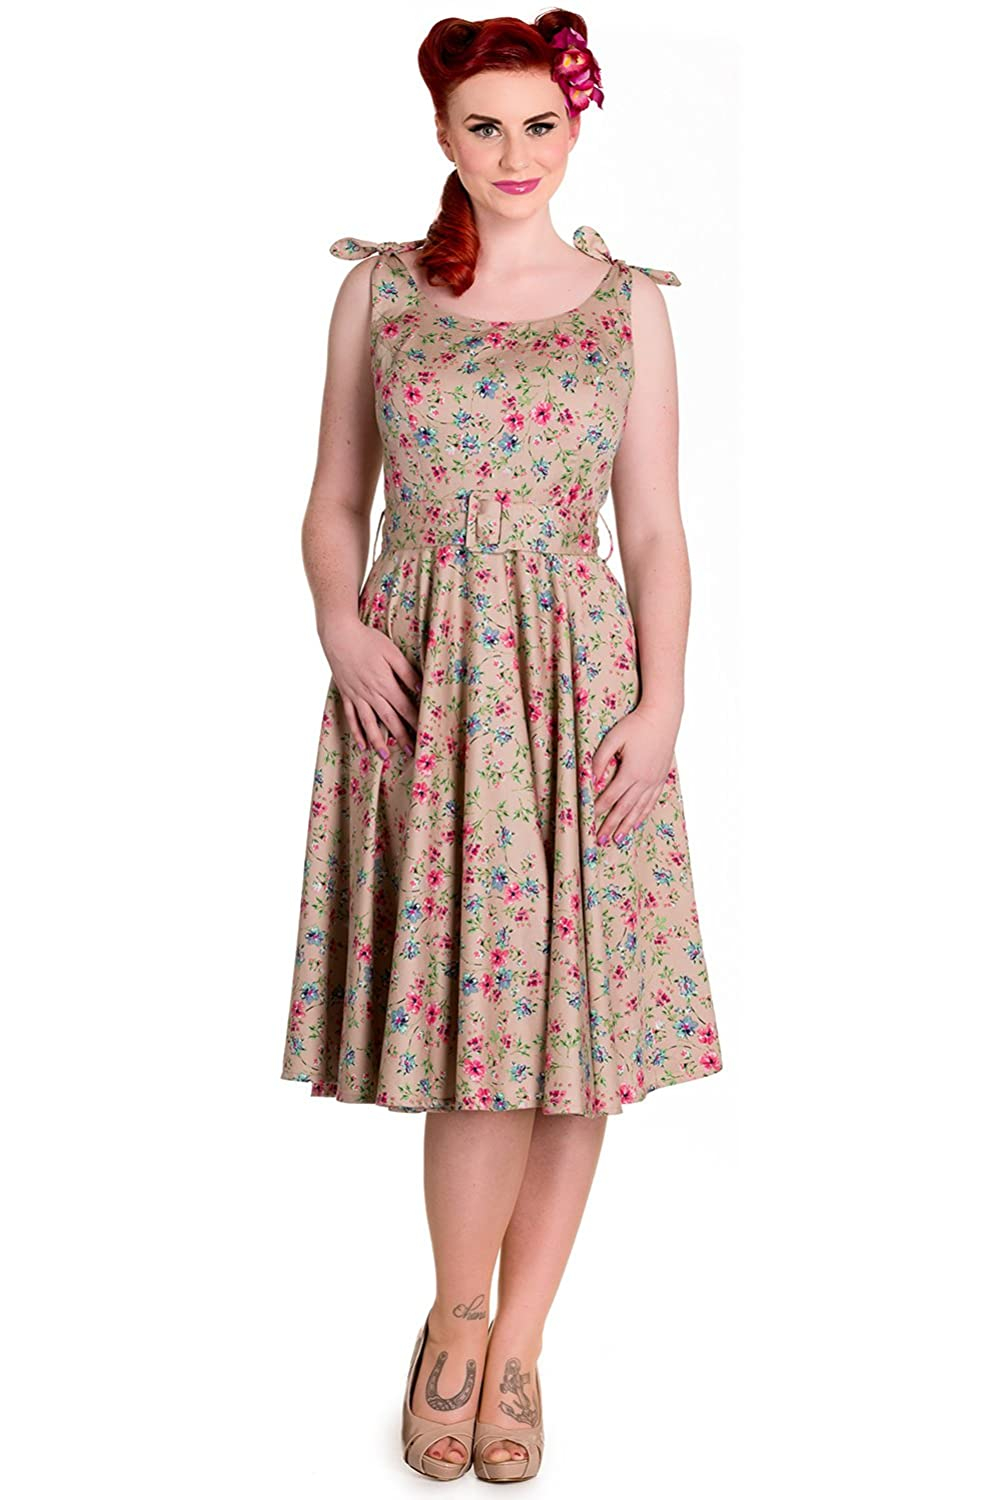 1940s Style Dresses and Clothing Hell Bunny Janine Floral Retro Rockabilly Dress $39.99 AT vintagedancer.com